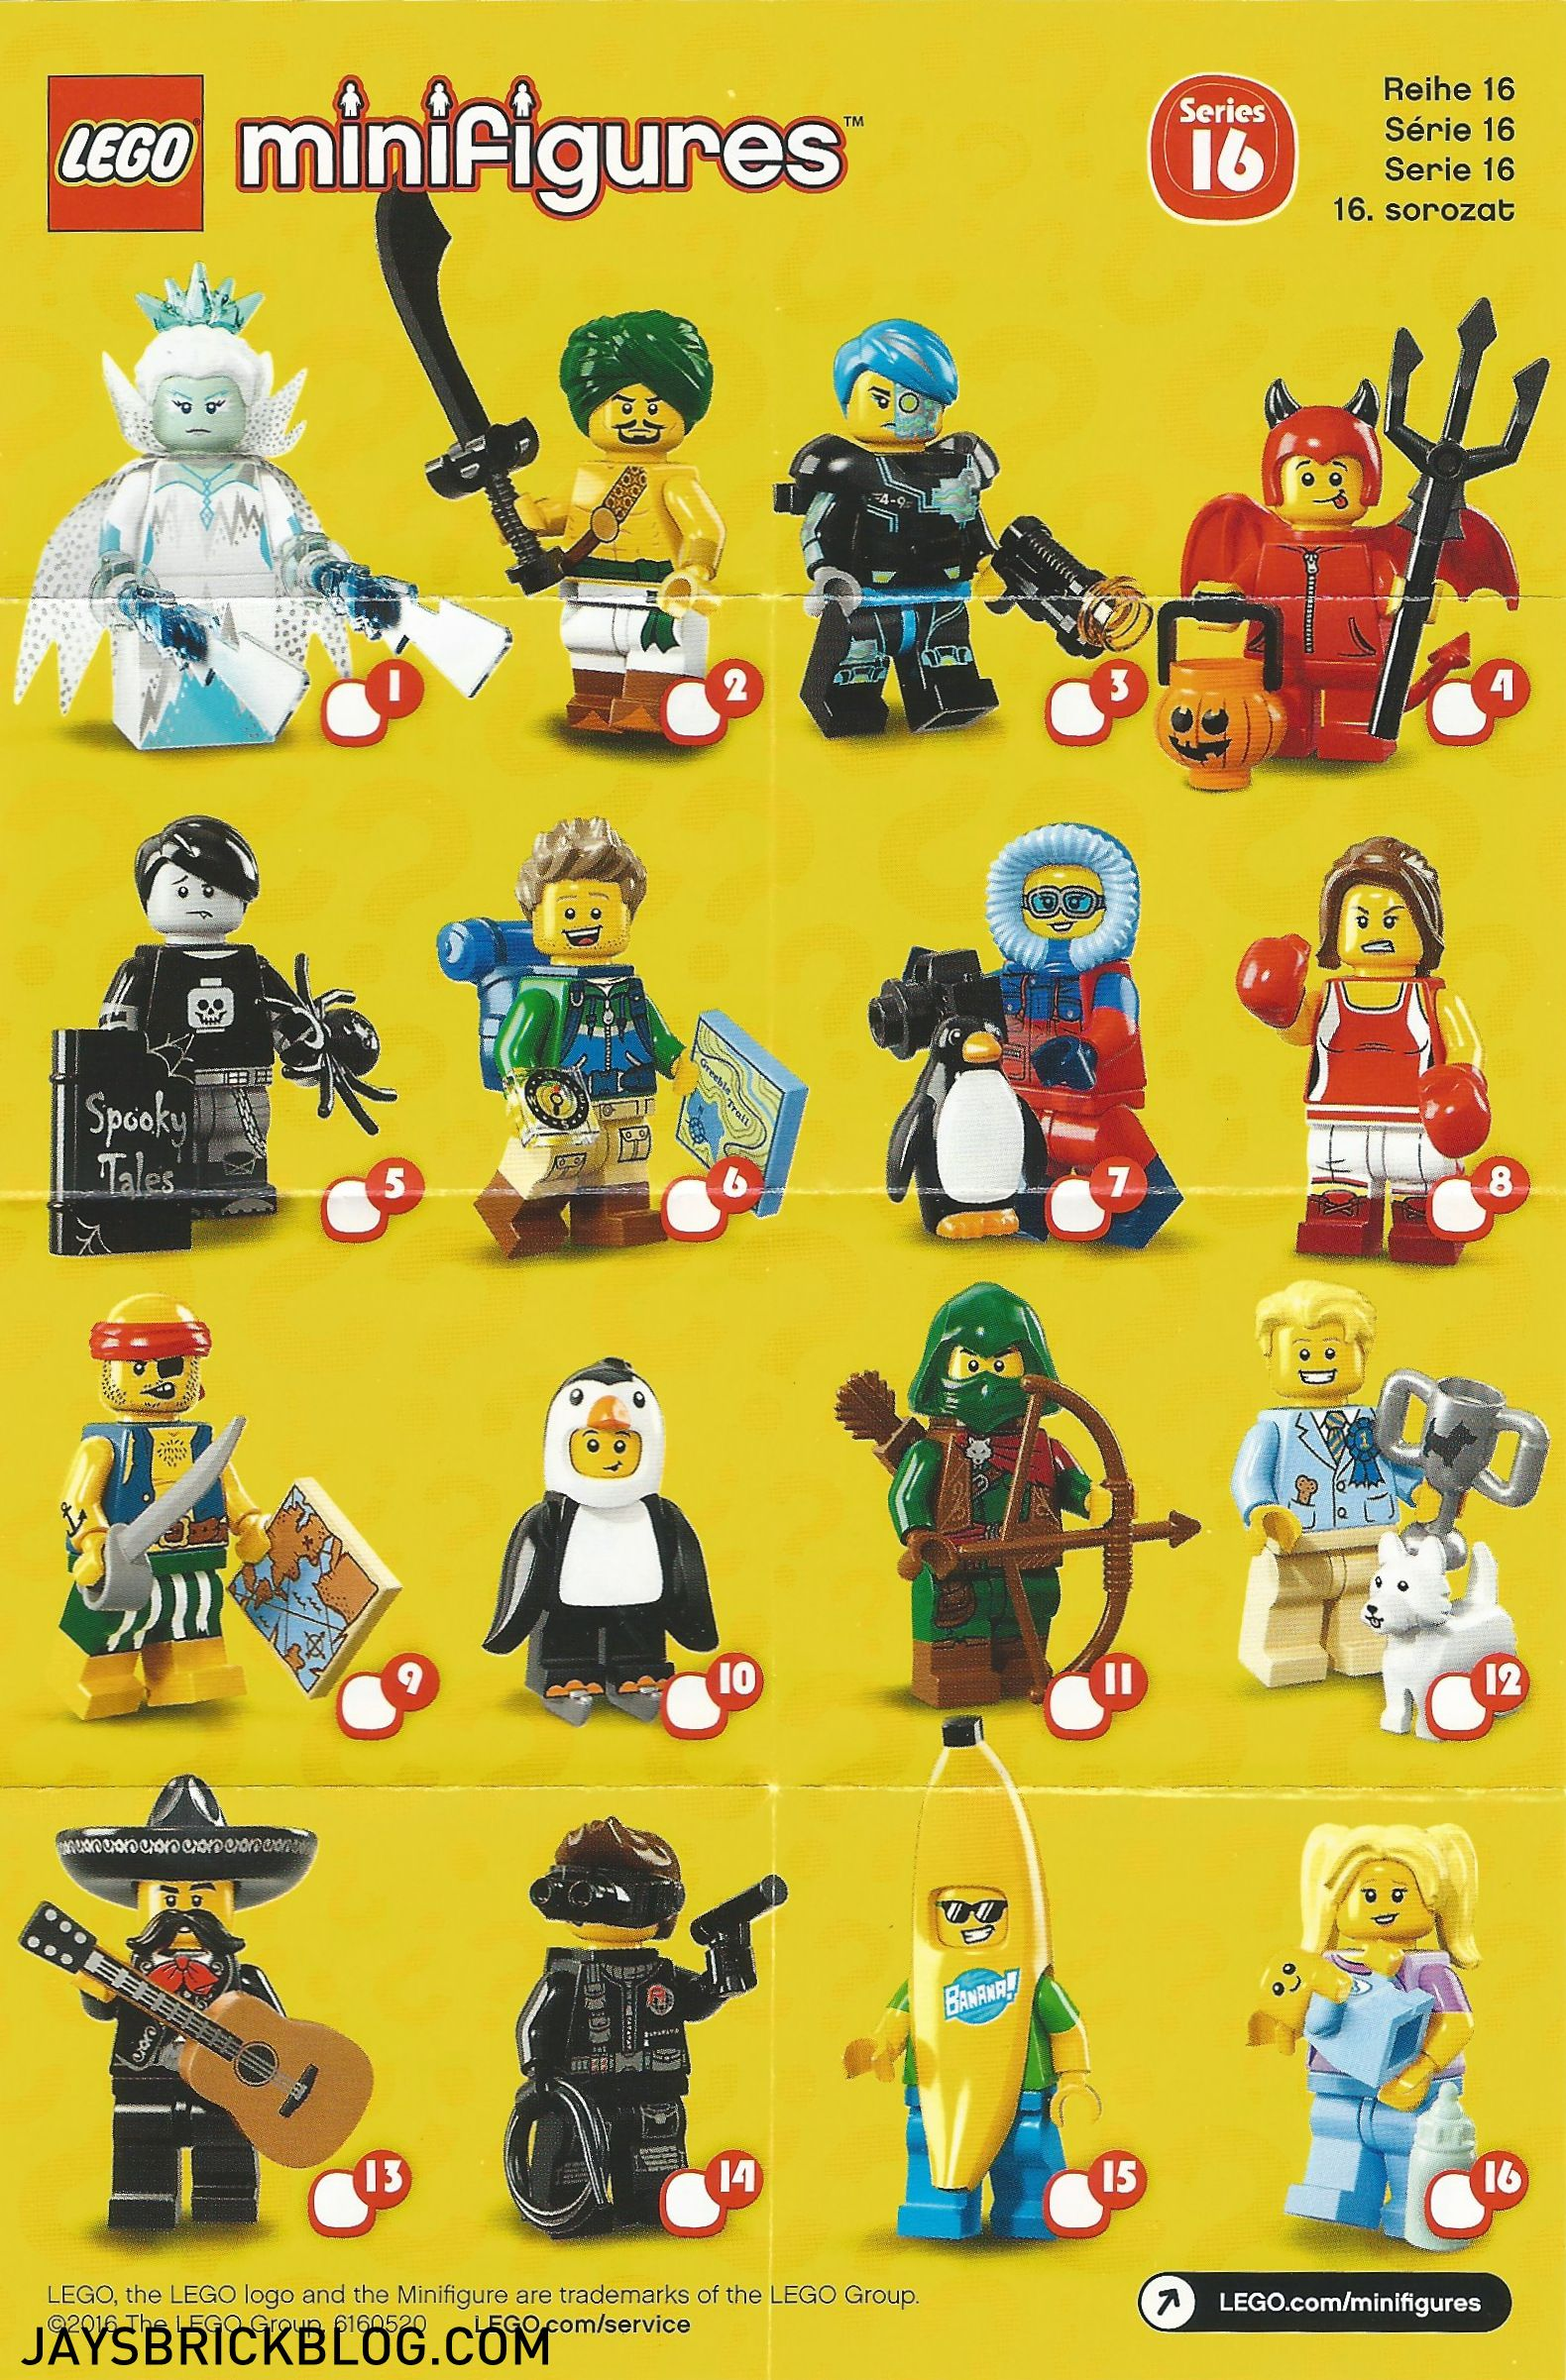 lego minifigures series 16 checklist lego minifigures pinterest lego lego city and games. Black Bedroom Furniture Sets. Home Design Ideas